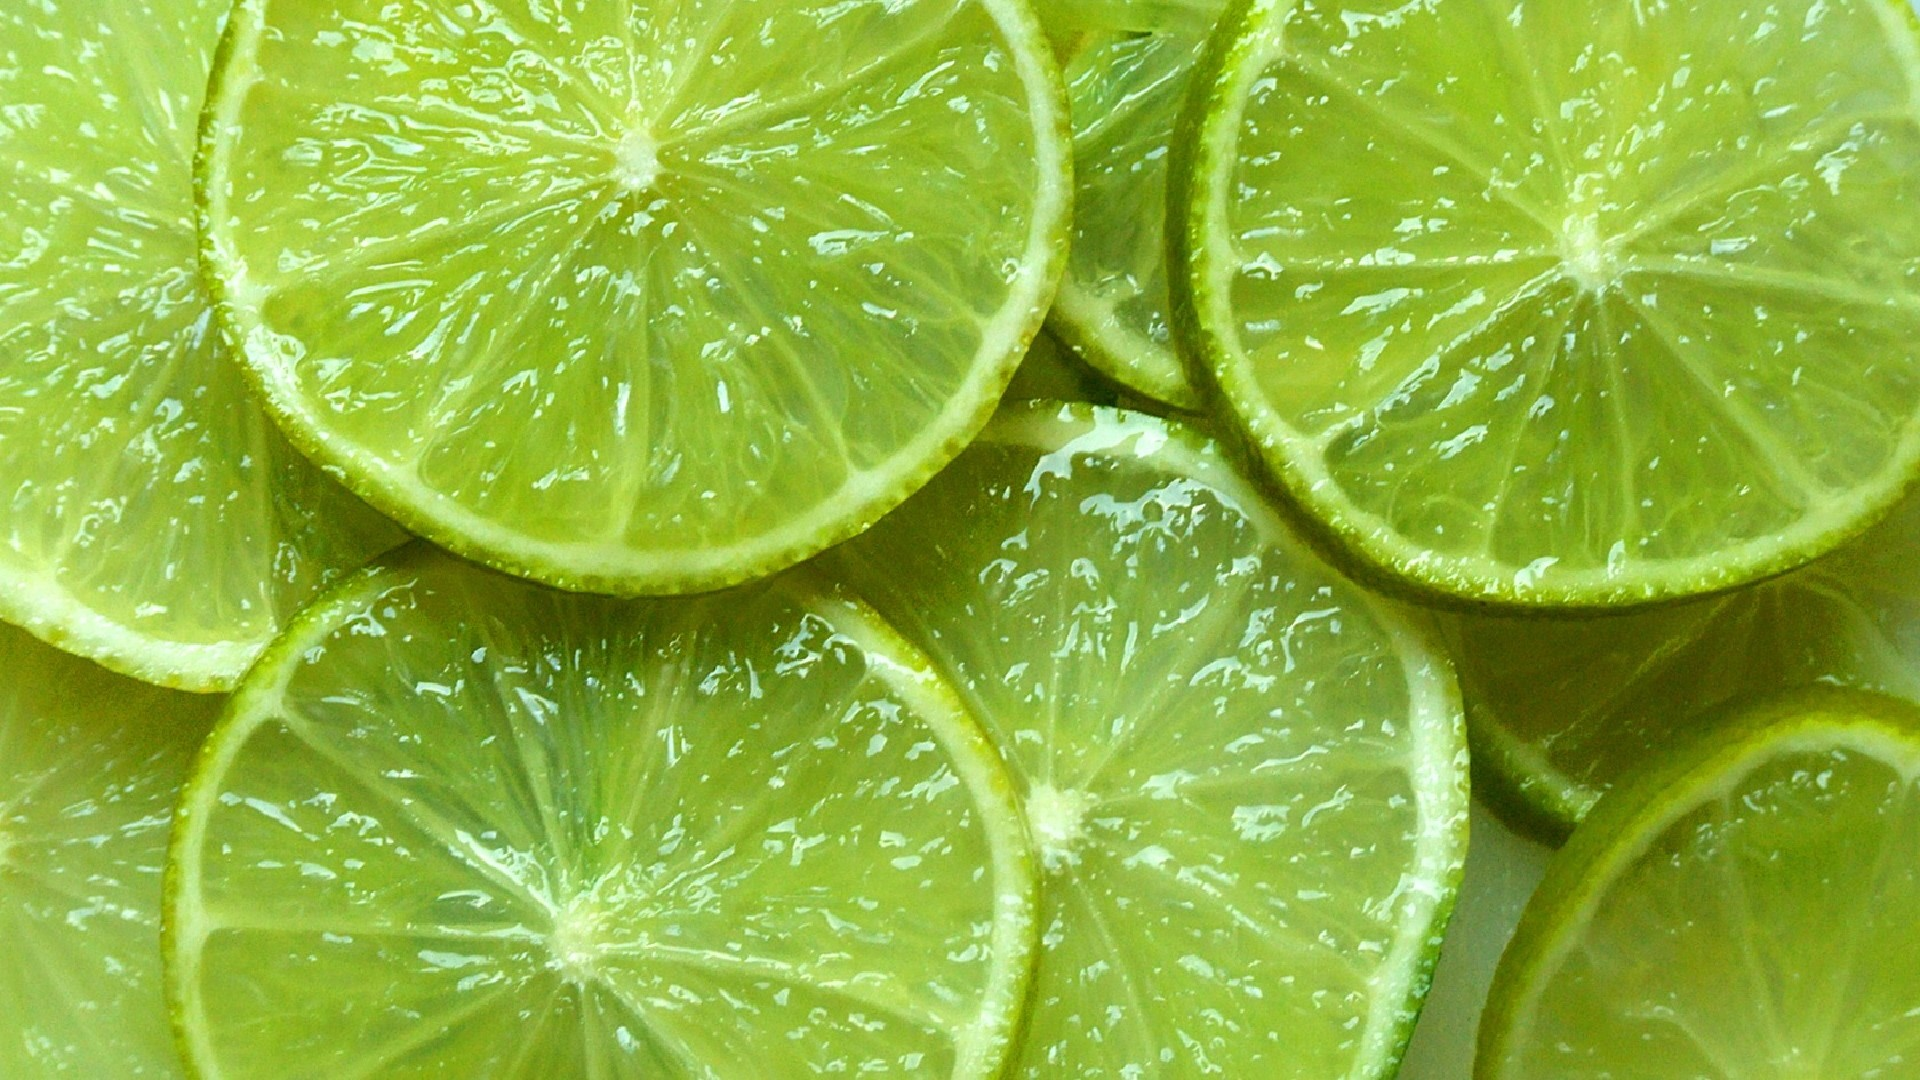 closeup slices fruit limes